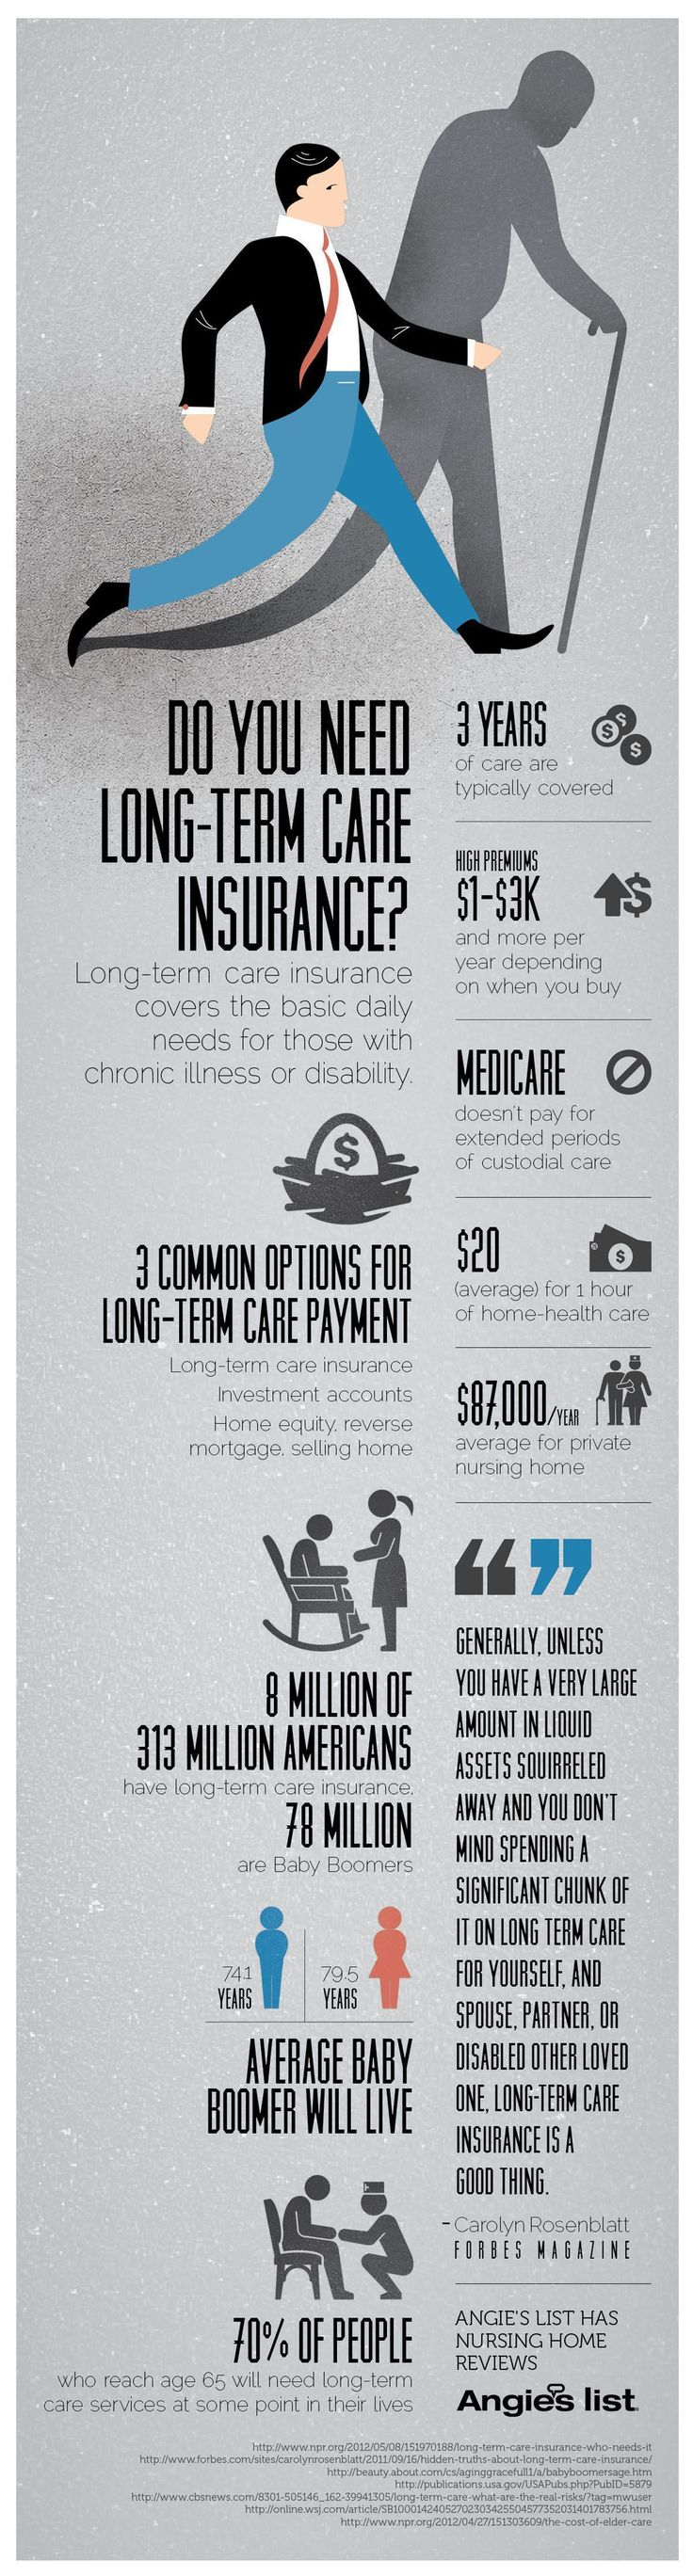 70% of people who reach the age of 65 will need long-term care at some point in their lives, but is long term care insurance right for your financial situation? It's expensive, and a savings and investment strategy might be better for you. In-home care is another option. Take a look at the information in this graphic to help make your decision. #lifeinsurance #LifeInsuranceFactsTips